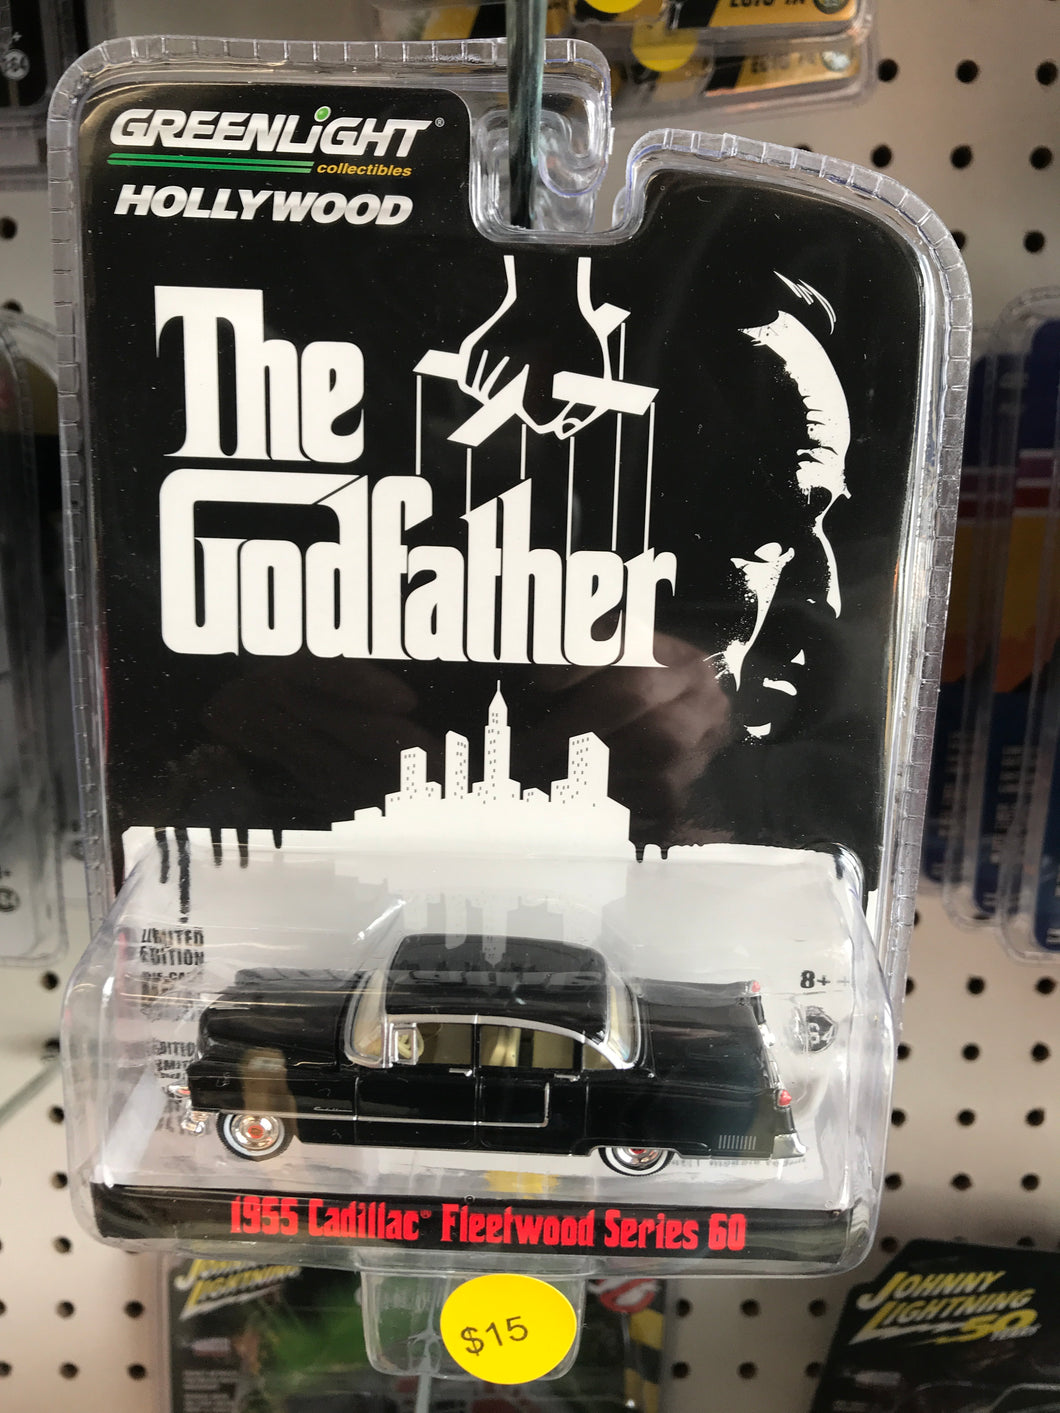 The Godfather 1955 Cadillac 1:64